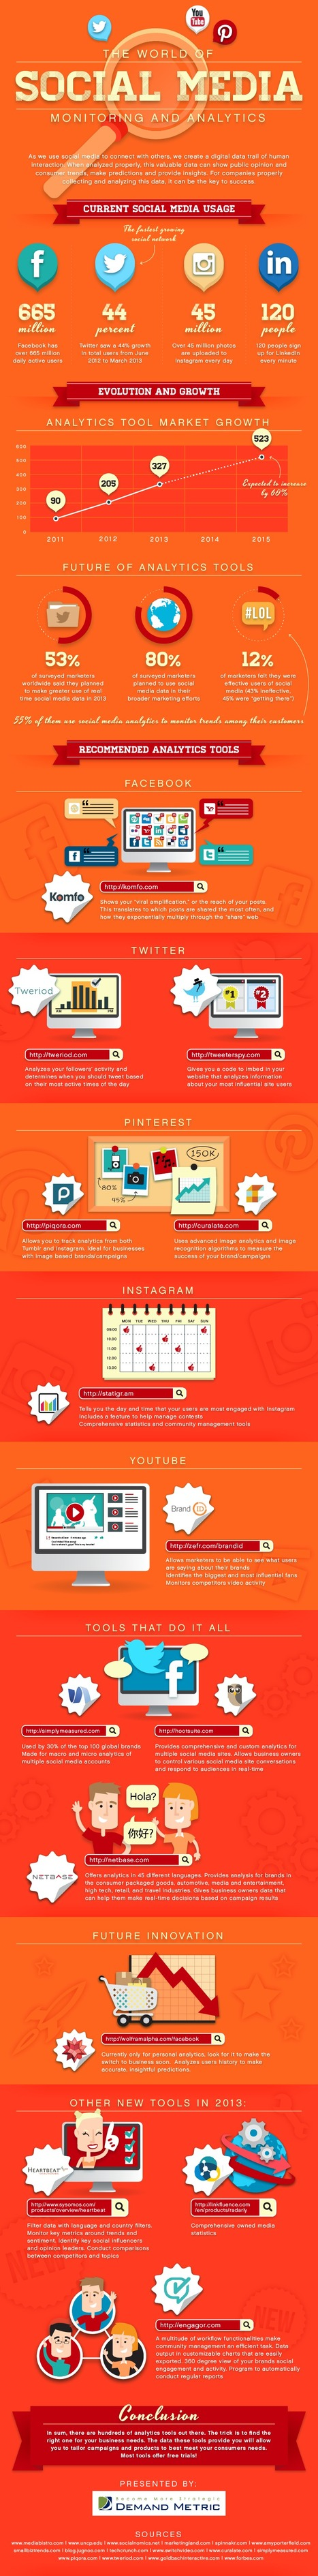 The World of Social Media Monitoring & Analytics  [infographic] | DV8 Digital Marketing Tips and Insight | Scoop.it